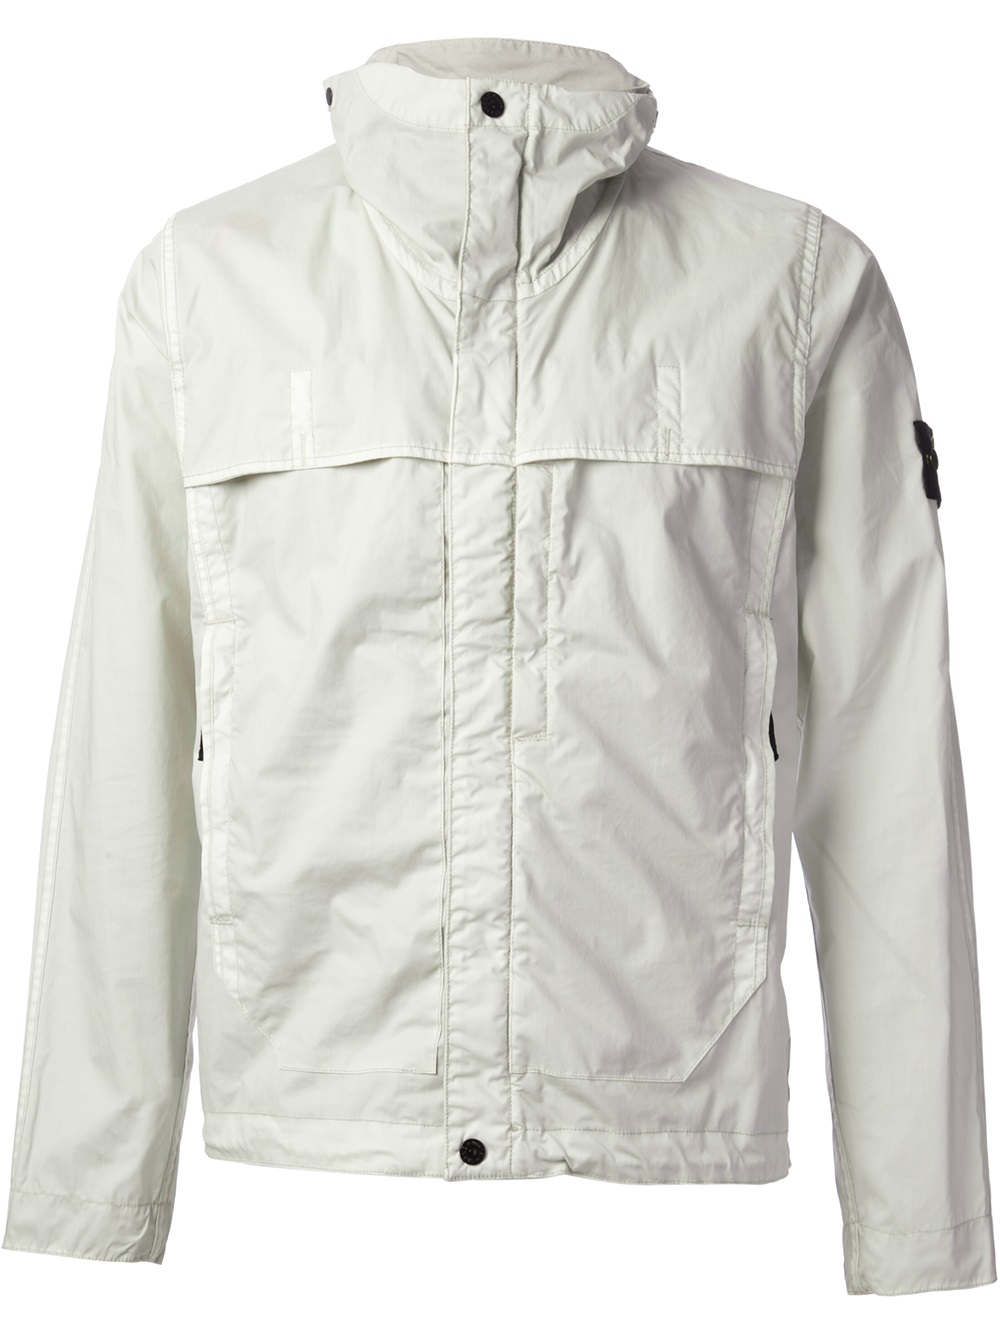 stone island windbreaker jacket in white for men lyst. Black Bedroom Furniture Sets. Home Design Ideas